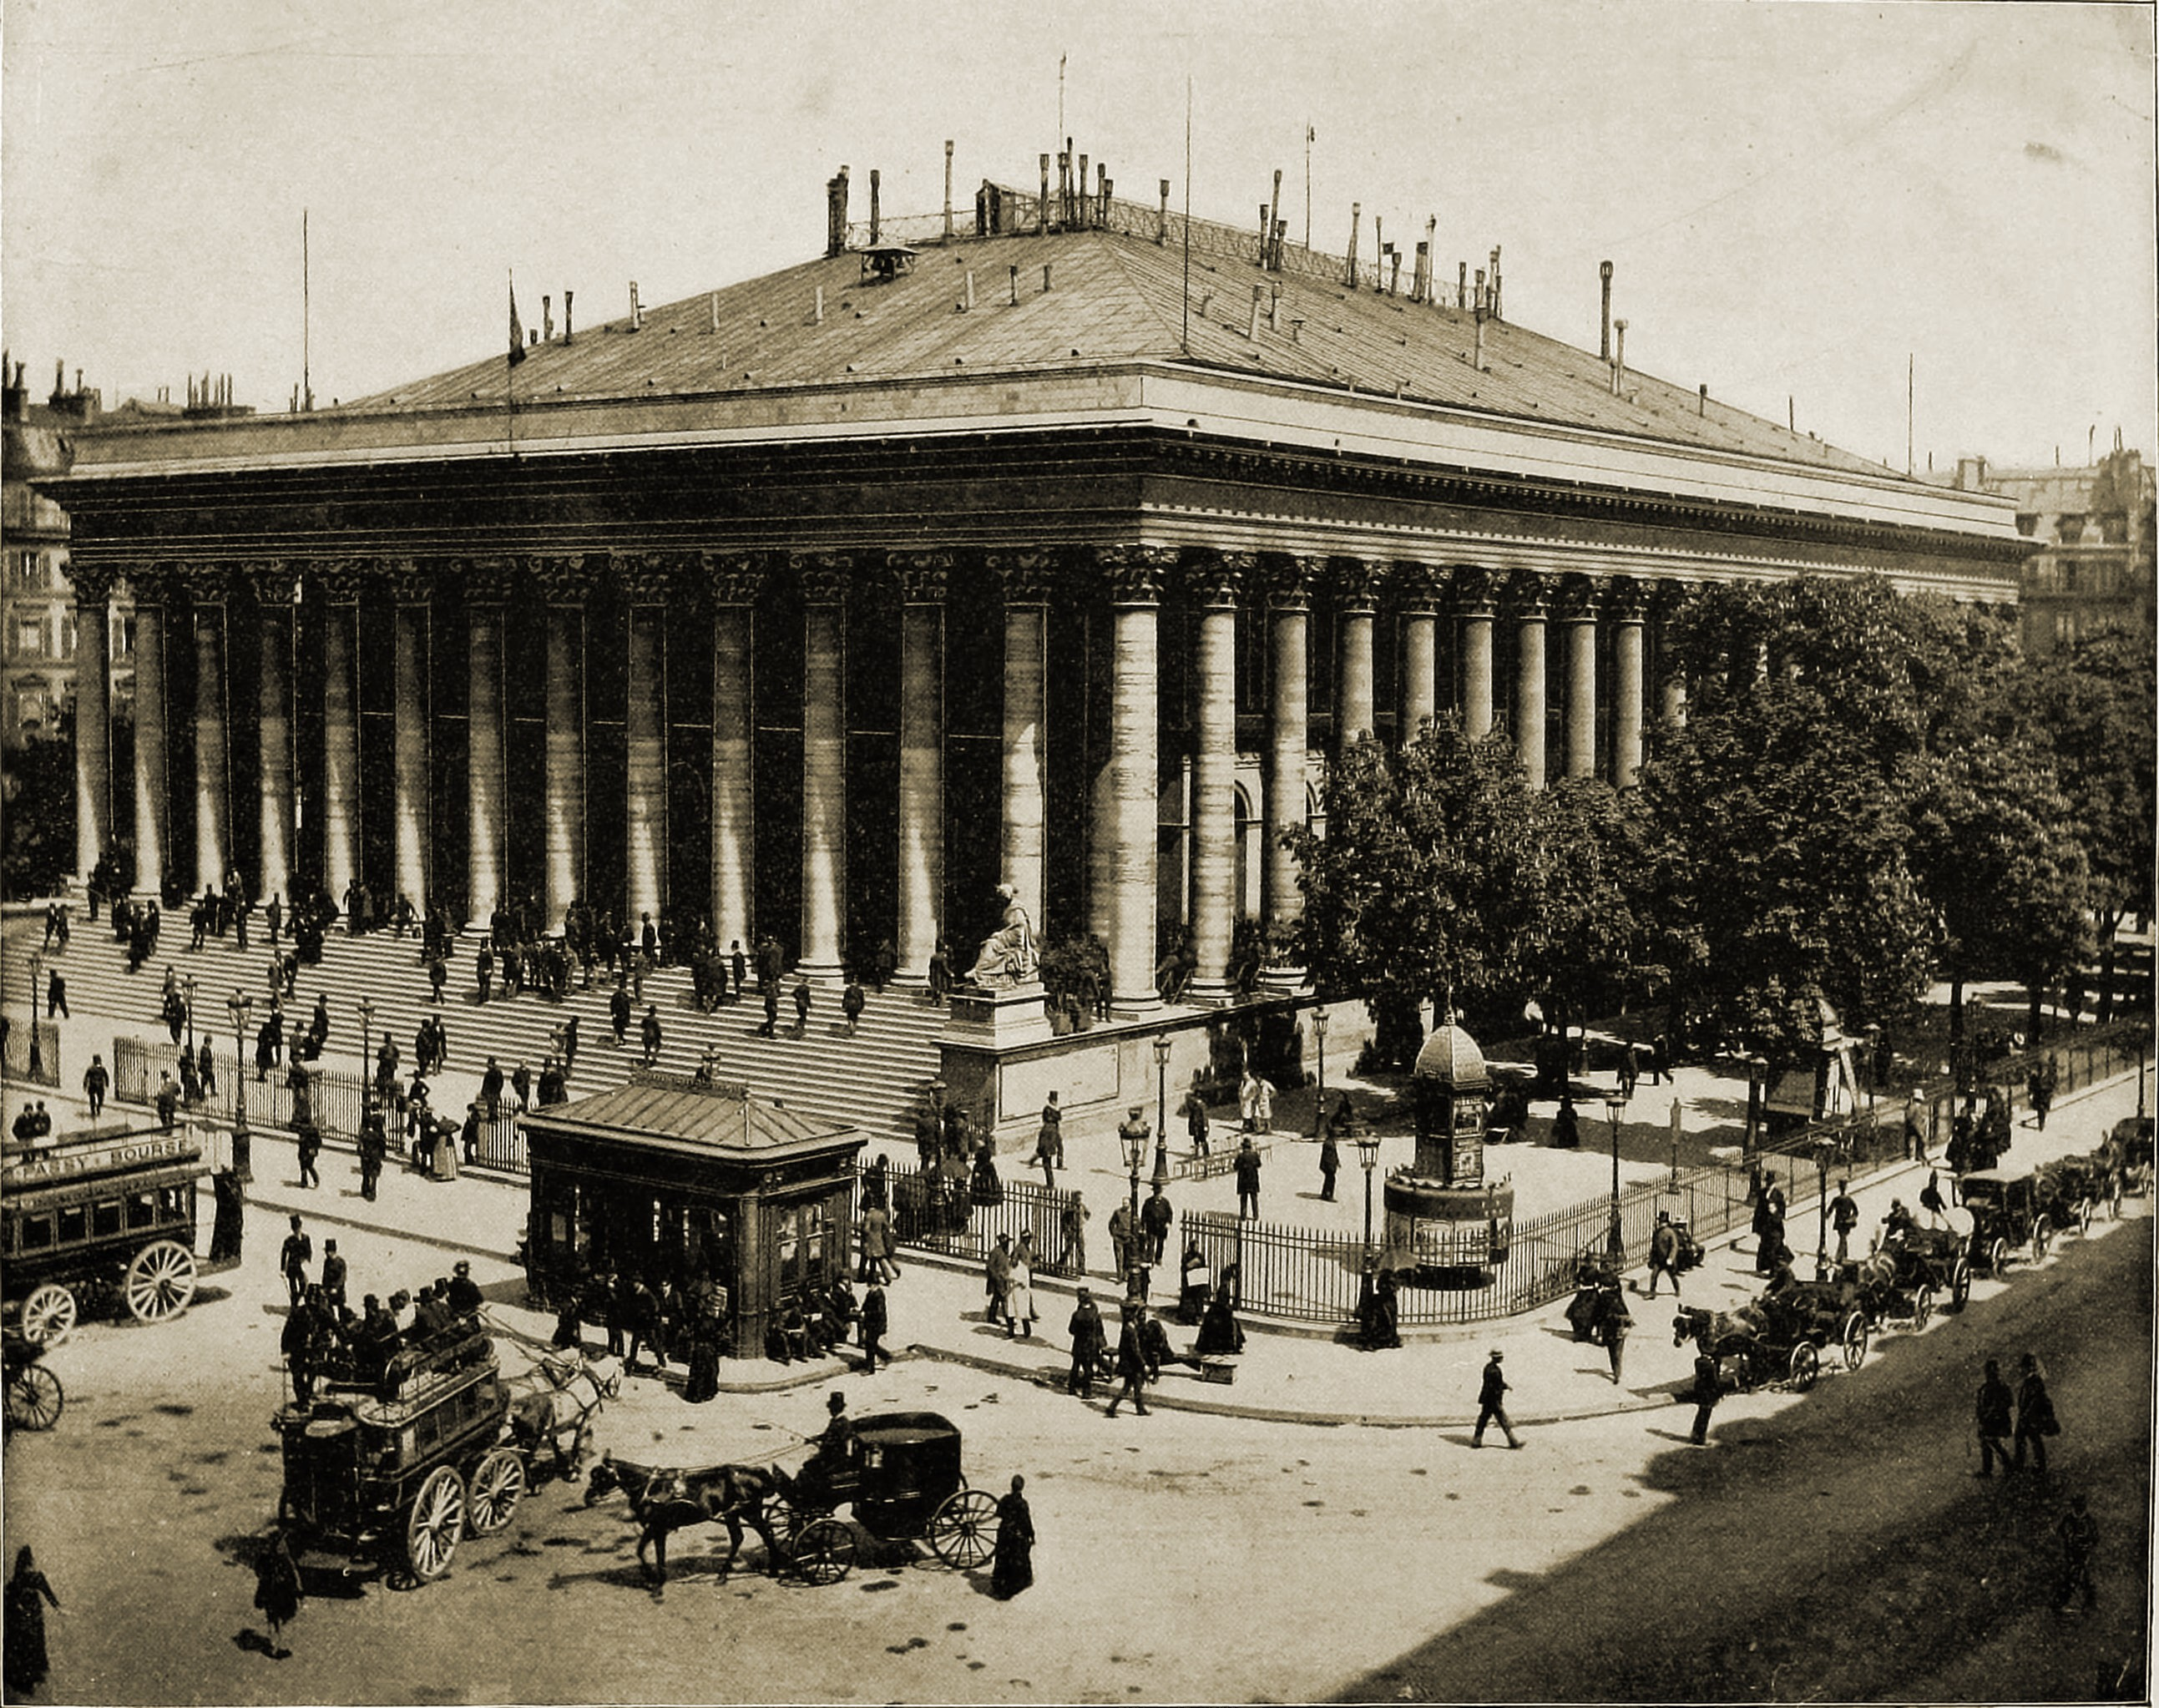 Paris Bourse (Exchange) France about 1892